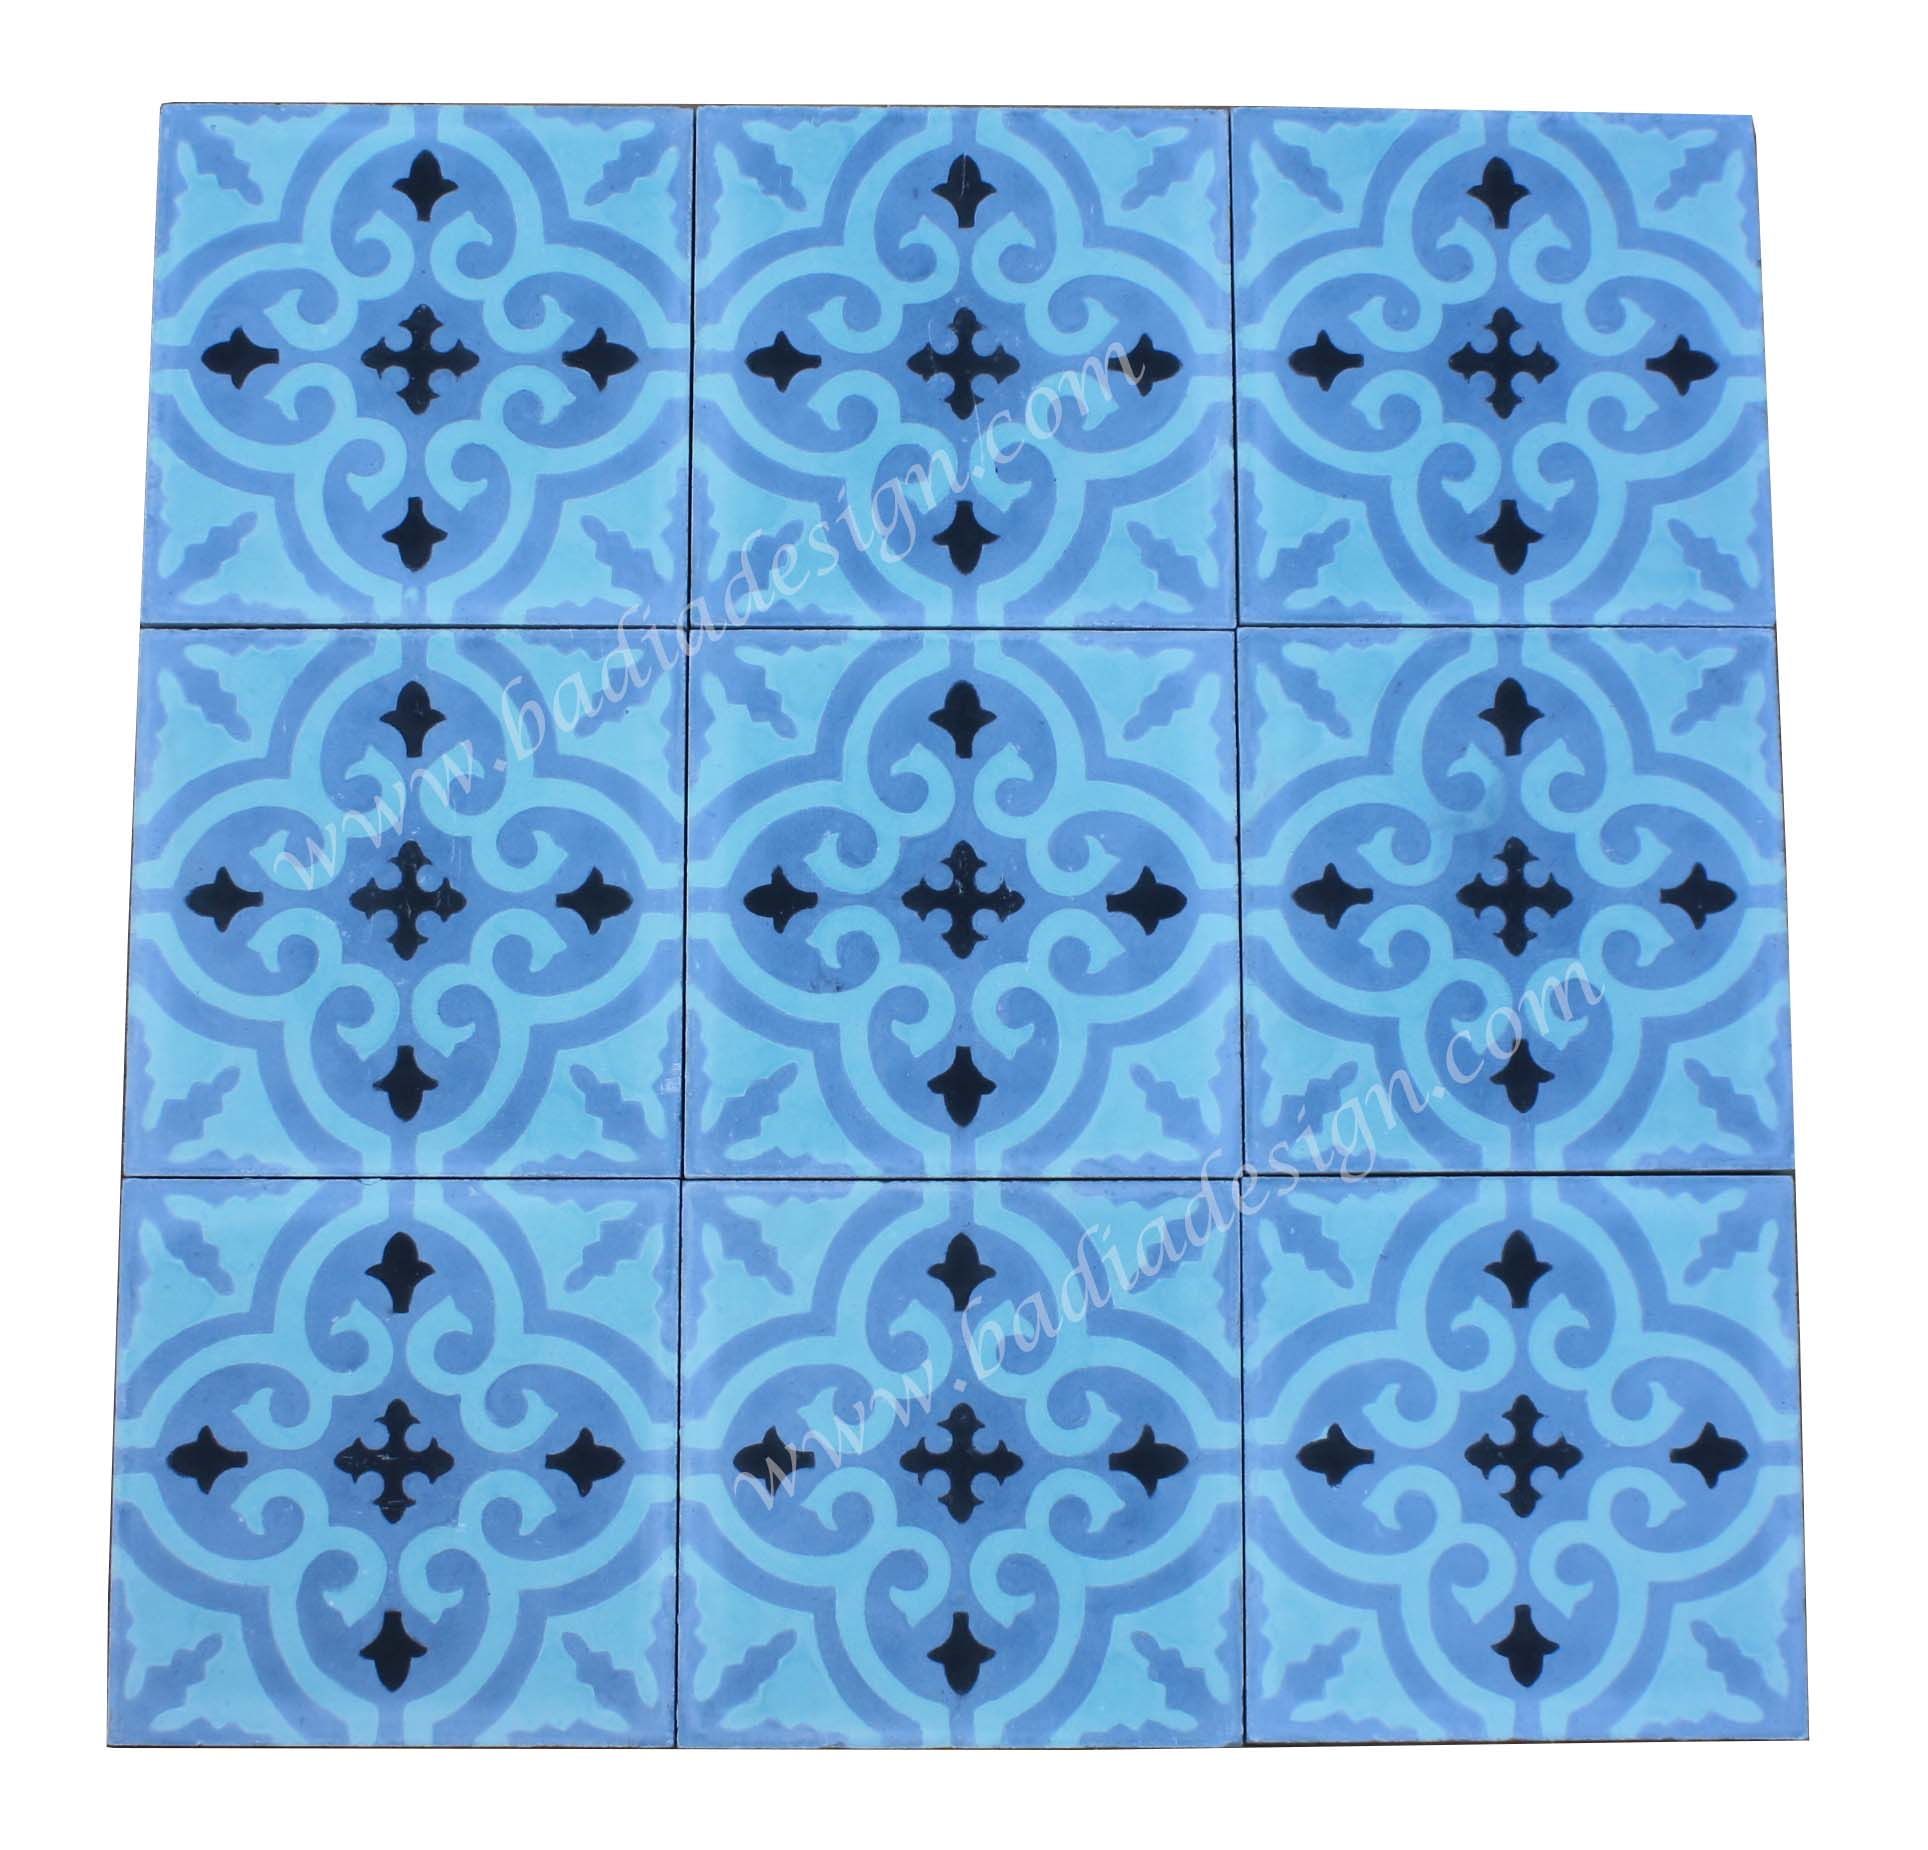 moroccan-square-tile-ct087-1.jpg